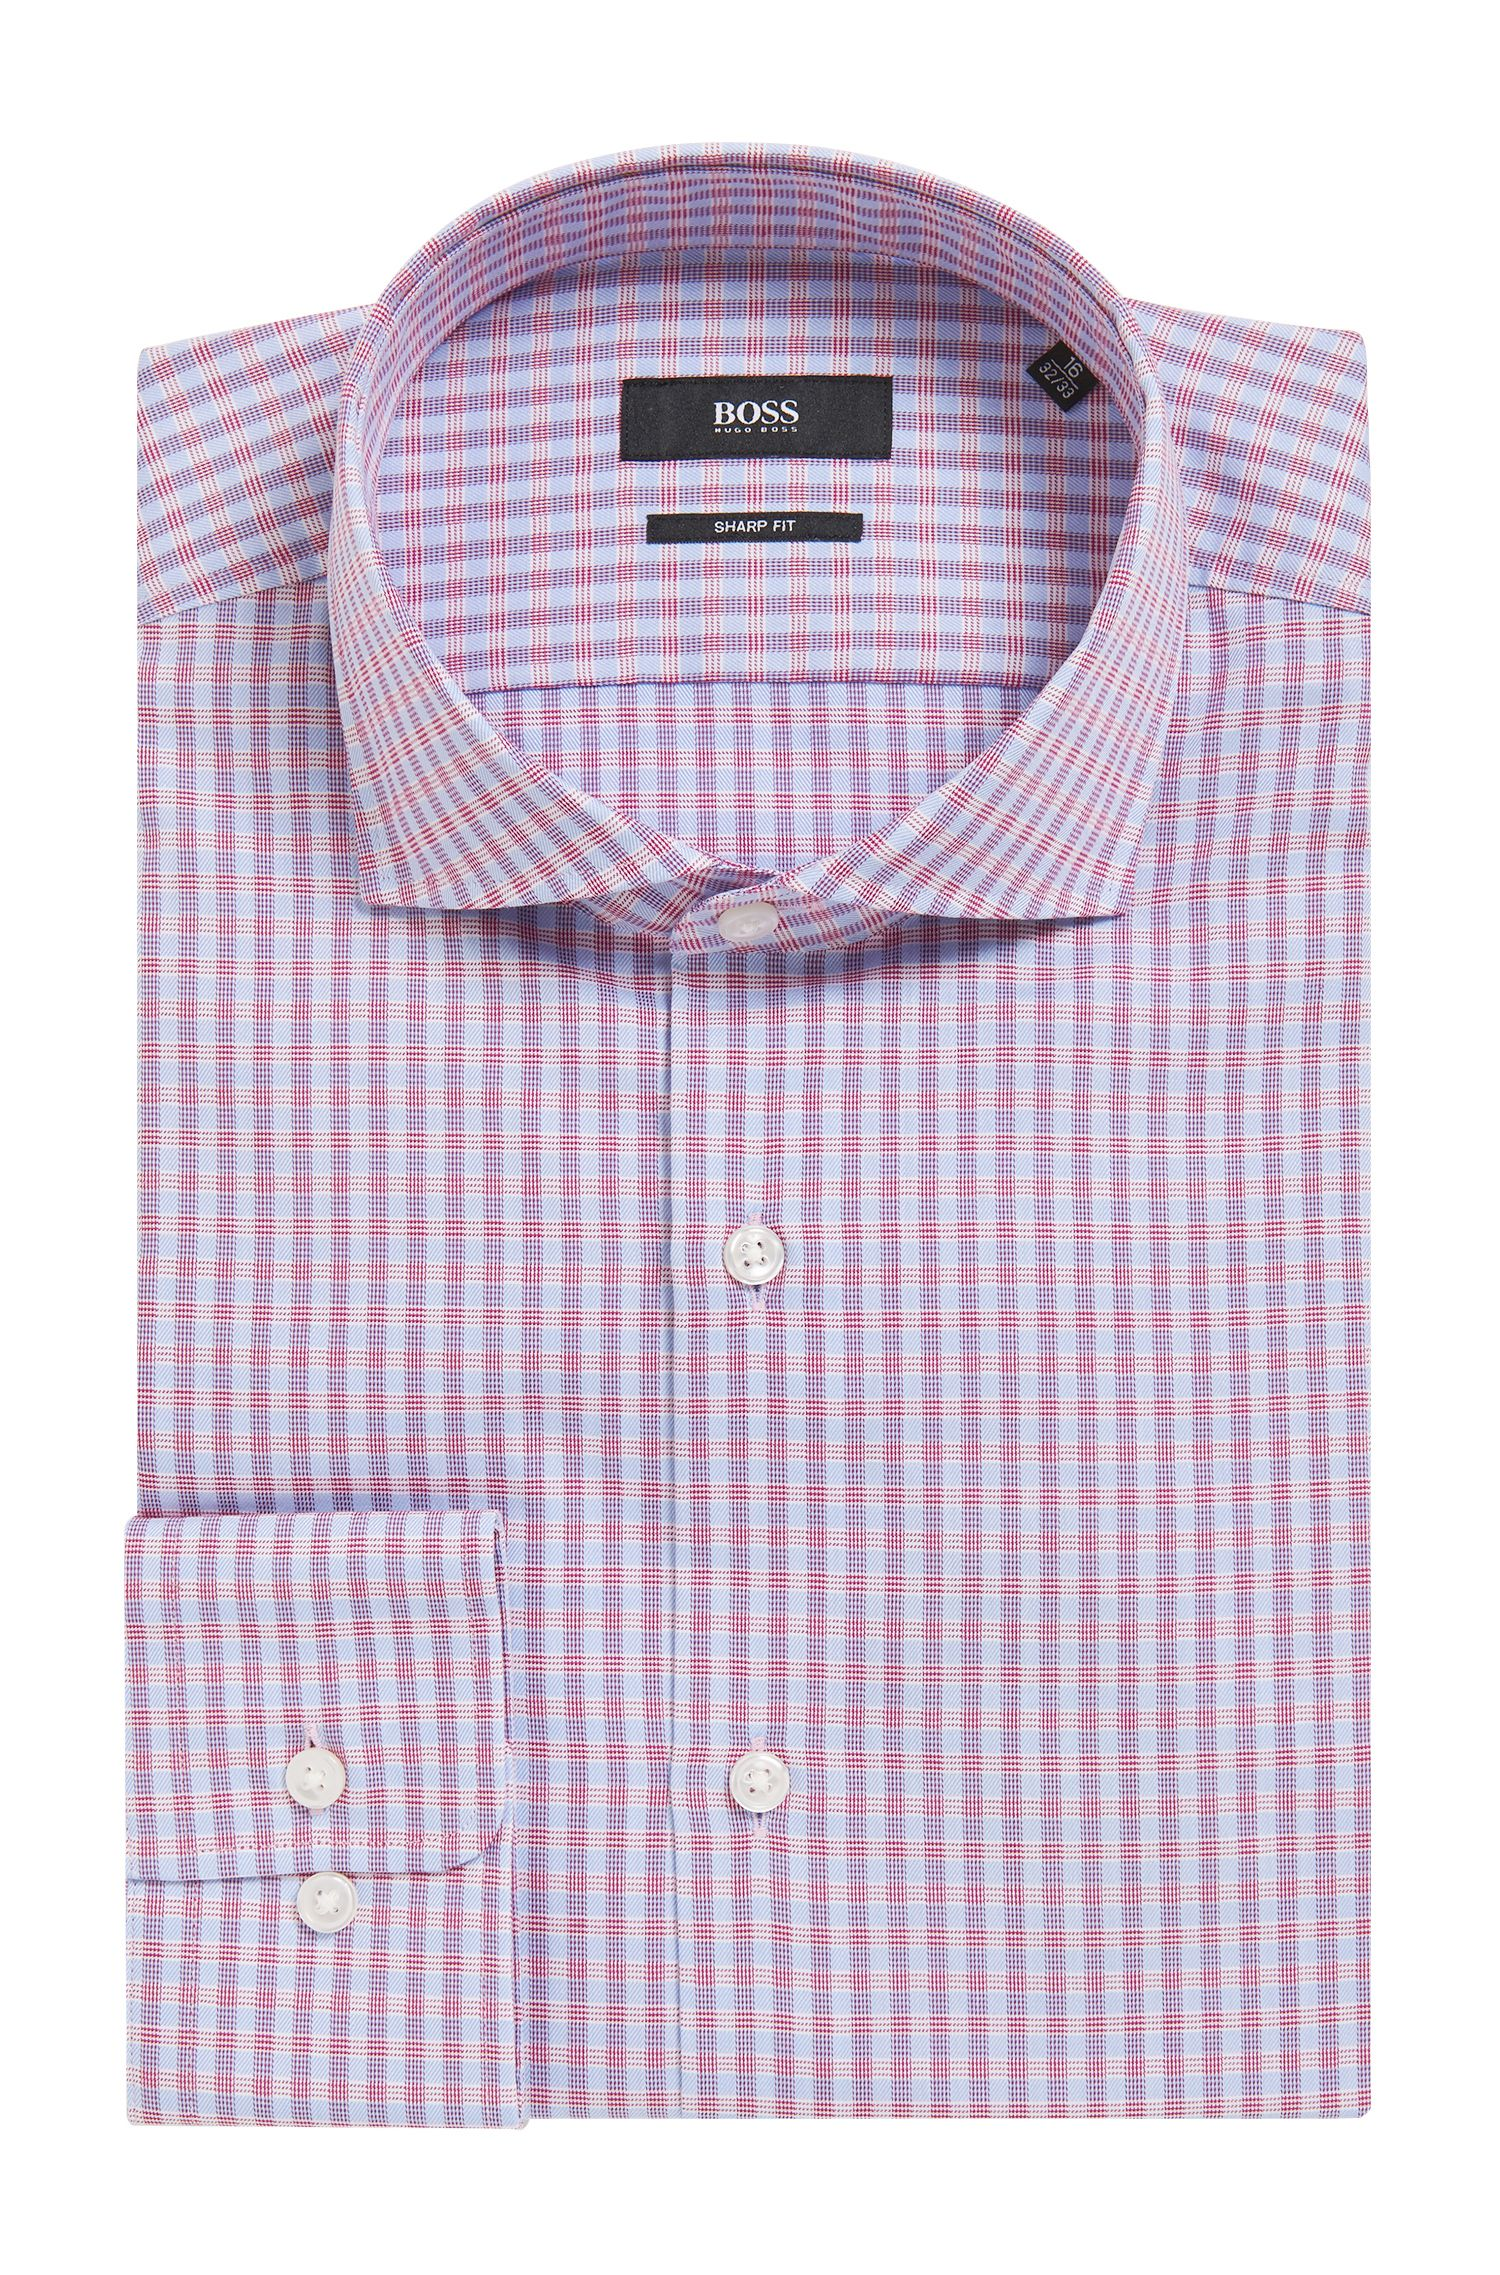 Checked Cotton Dress Shirt, Sharp Fit | Mark US, Dark pink